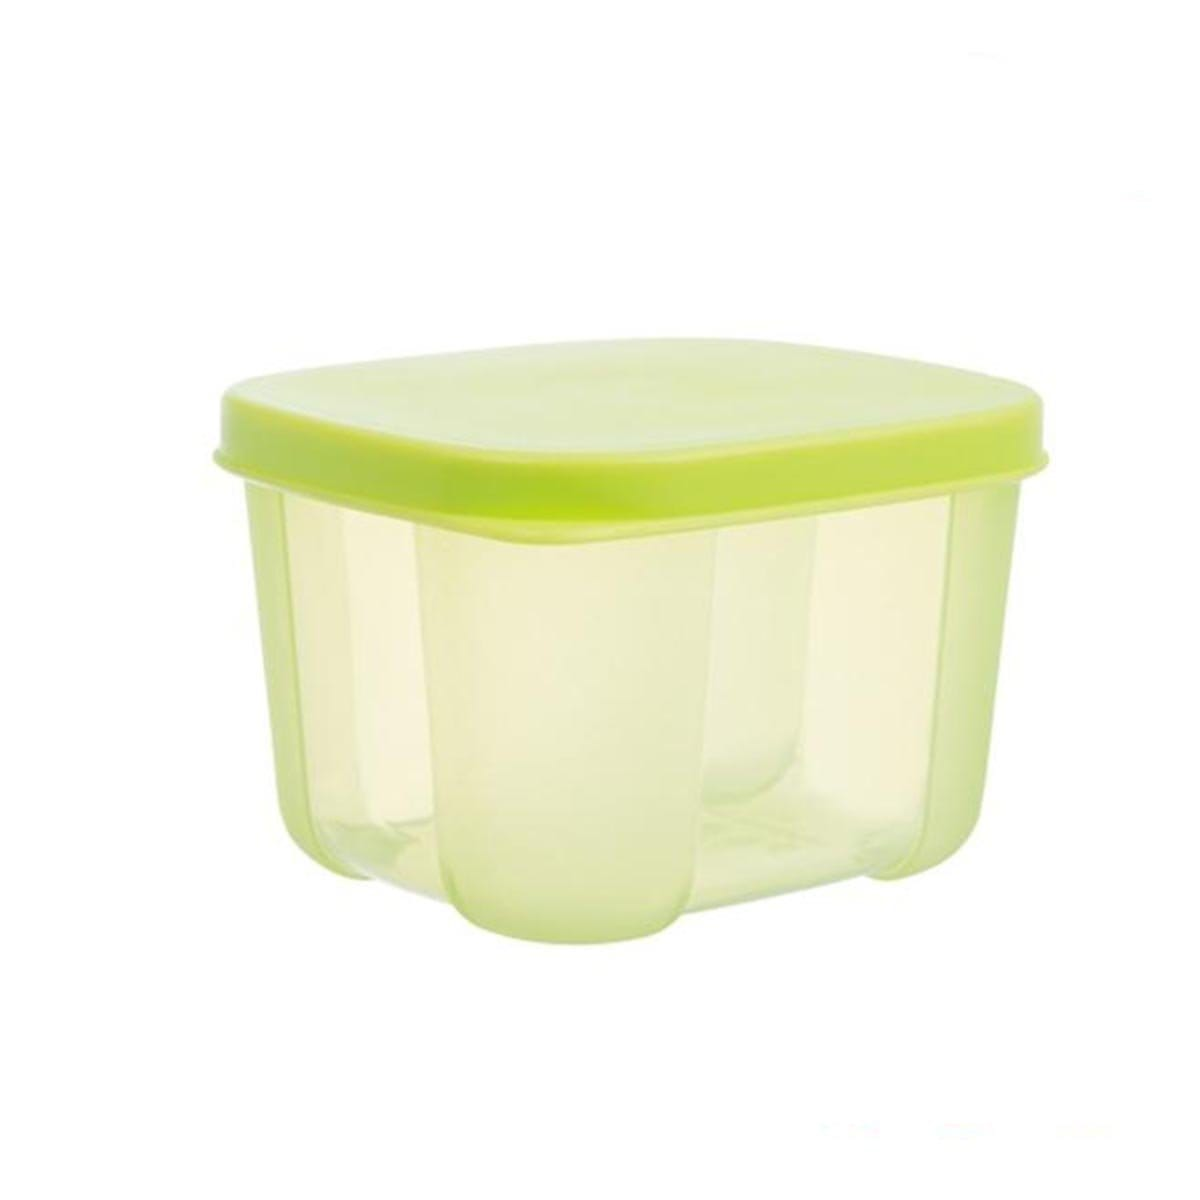 0122 Food Container 0.45L